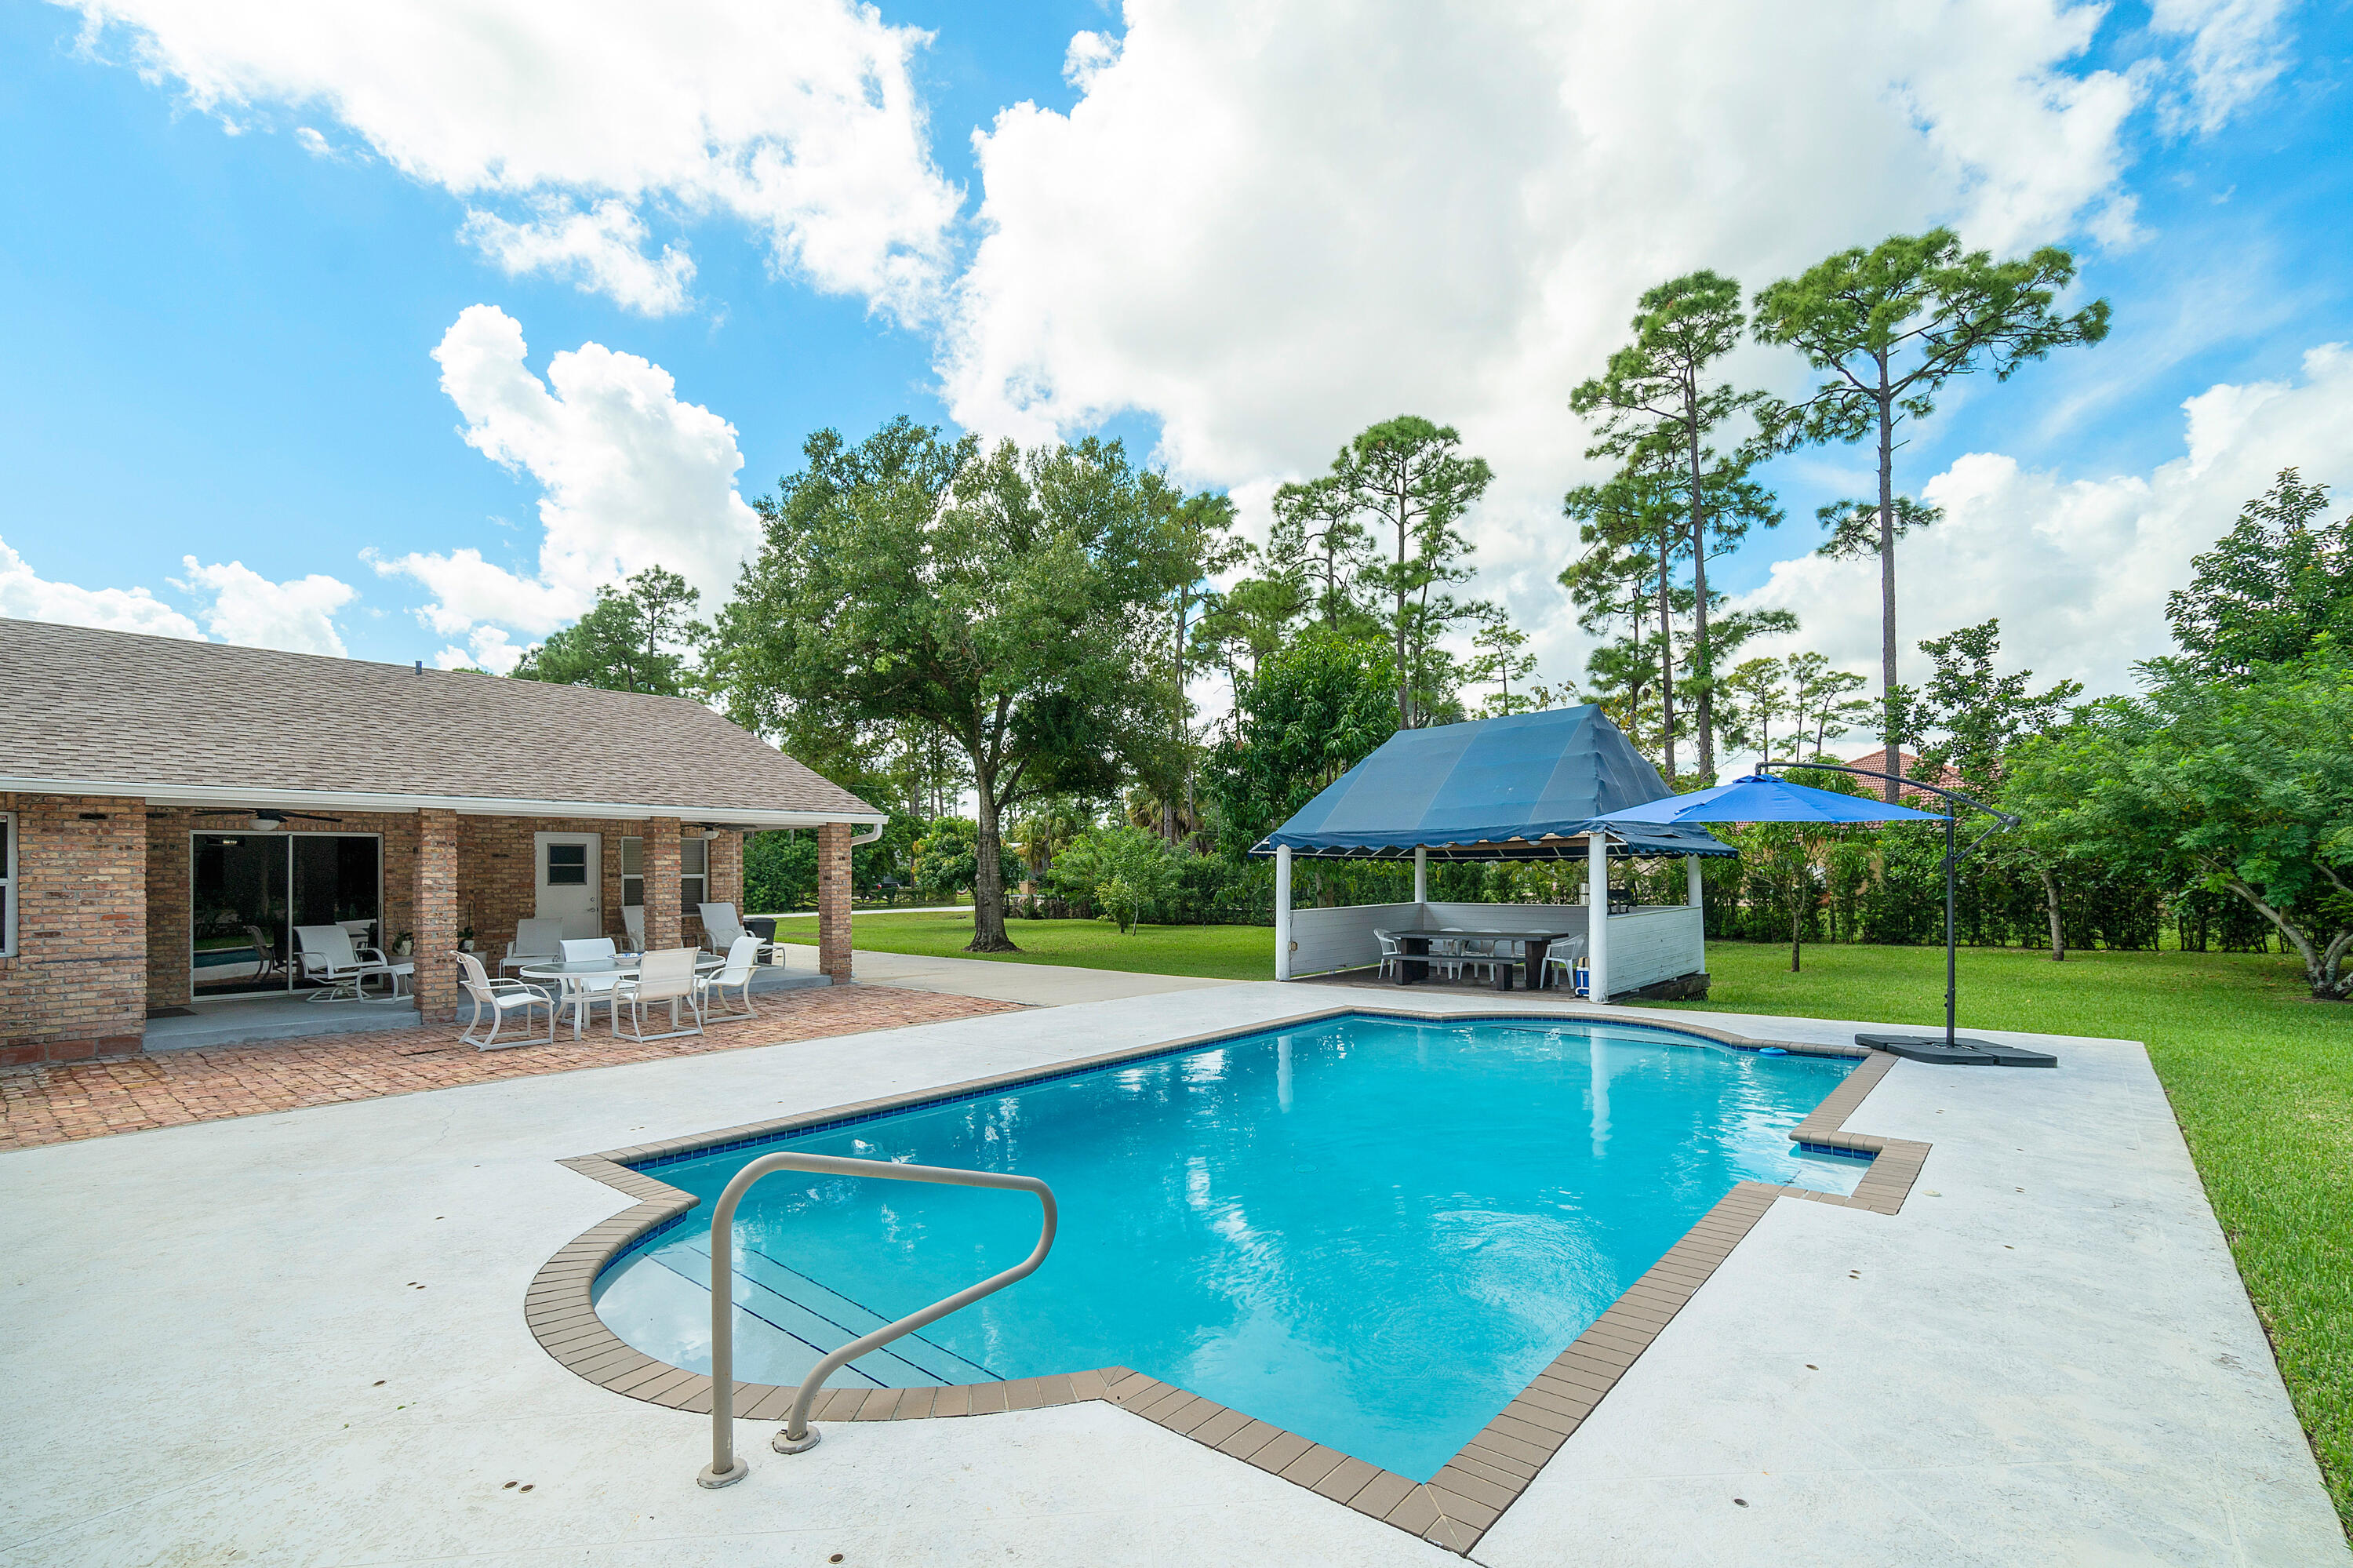 Pool & Outdoor Dining Area